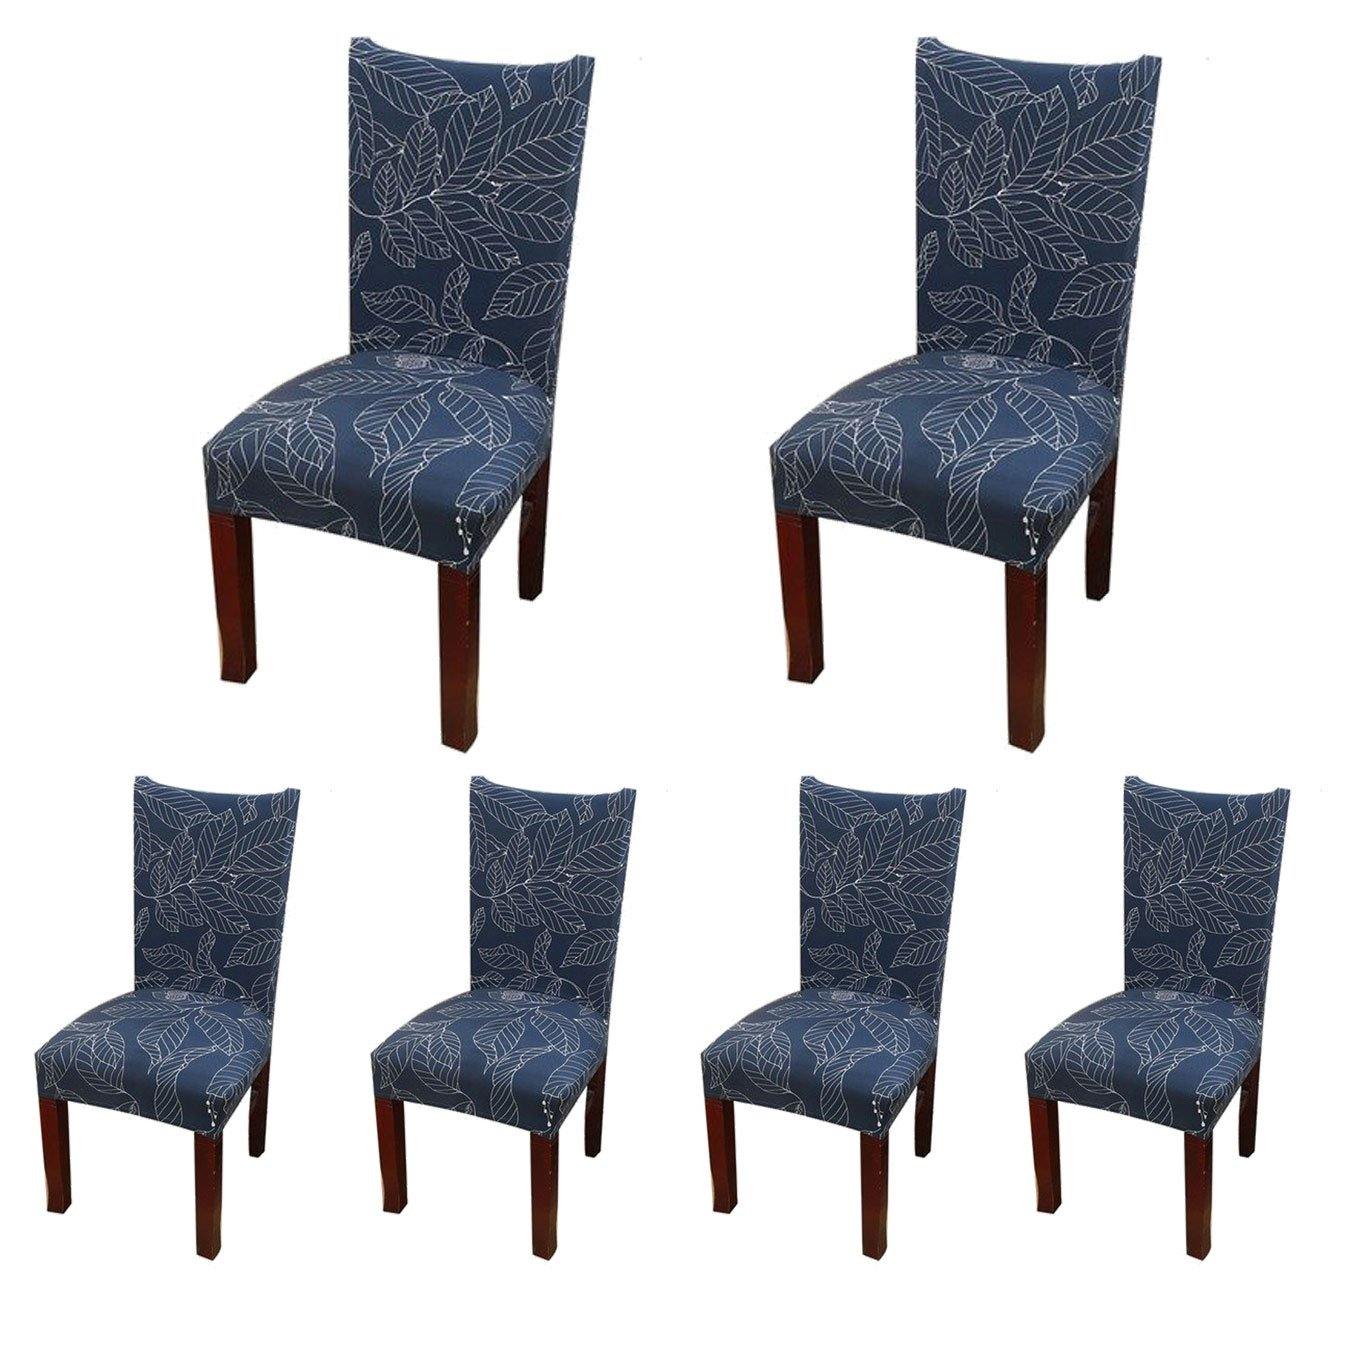 SoulFeel 6 x Soft Spandex Fit Stretch Short Dining Room Covers Printed Pattern, Banquet Chair Seat Protector Slipcover Home Party Hotel Wedding Ceremony, Pack of 6, Style 11